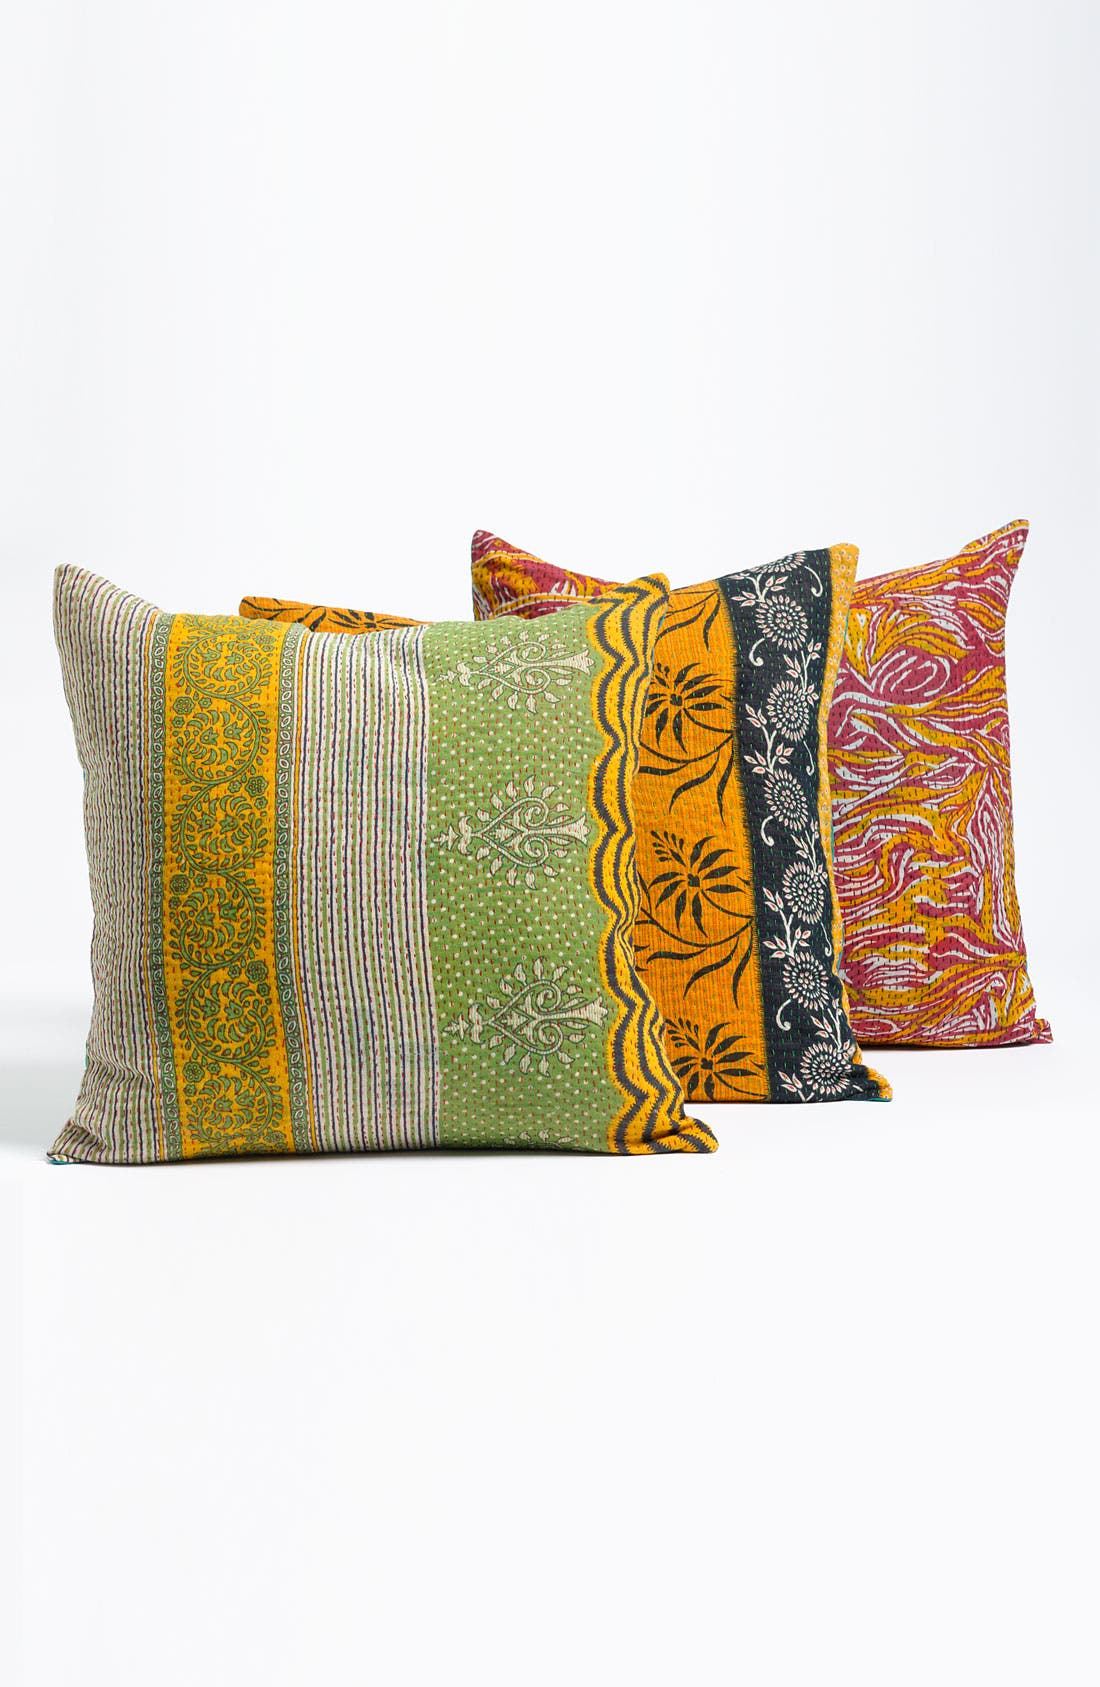 Alternate Image 1 Selected - Rizzy Home 'Kantha' Pillow